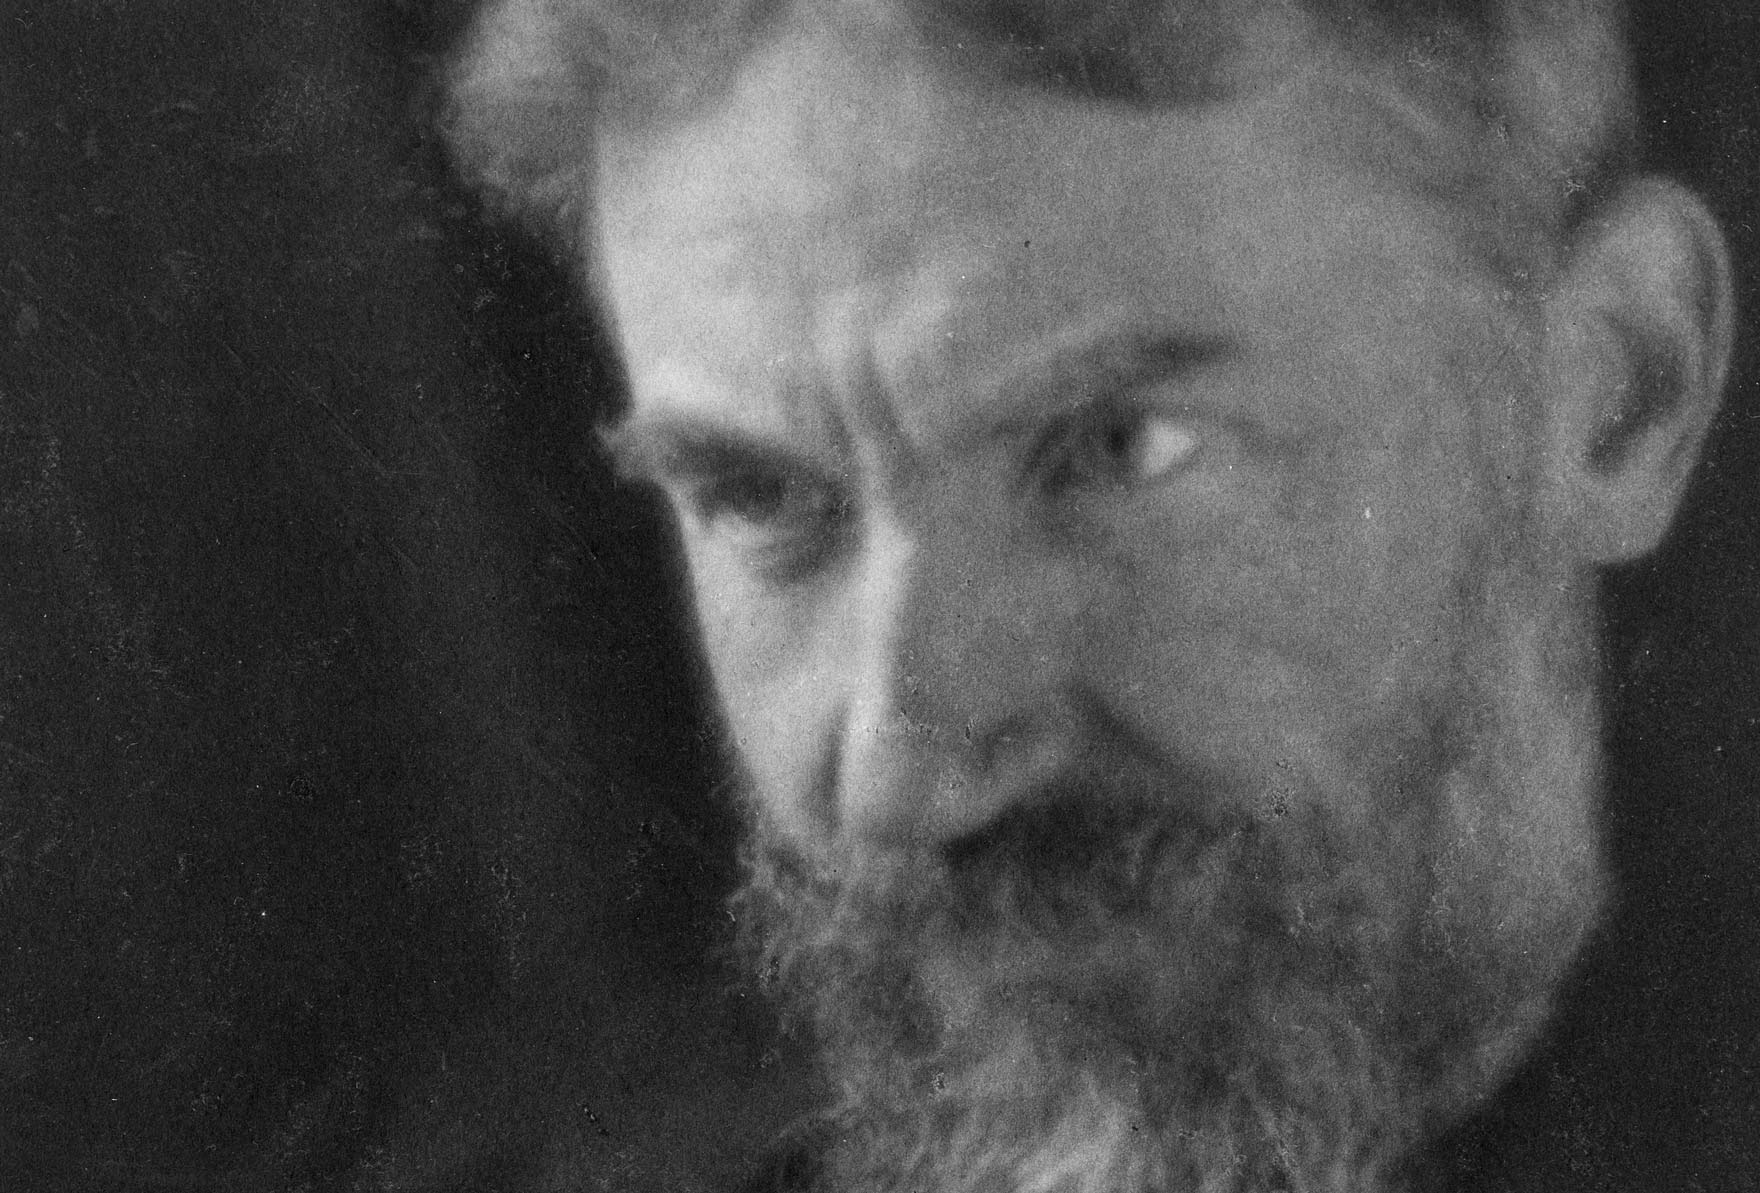 George Bernard Shaw's controversial new play to be suppressed?